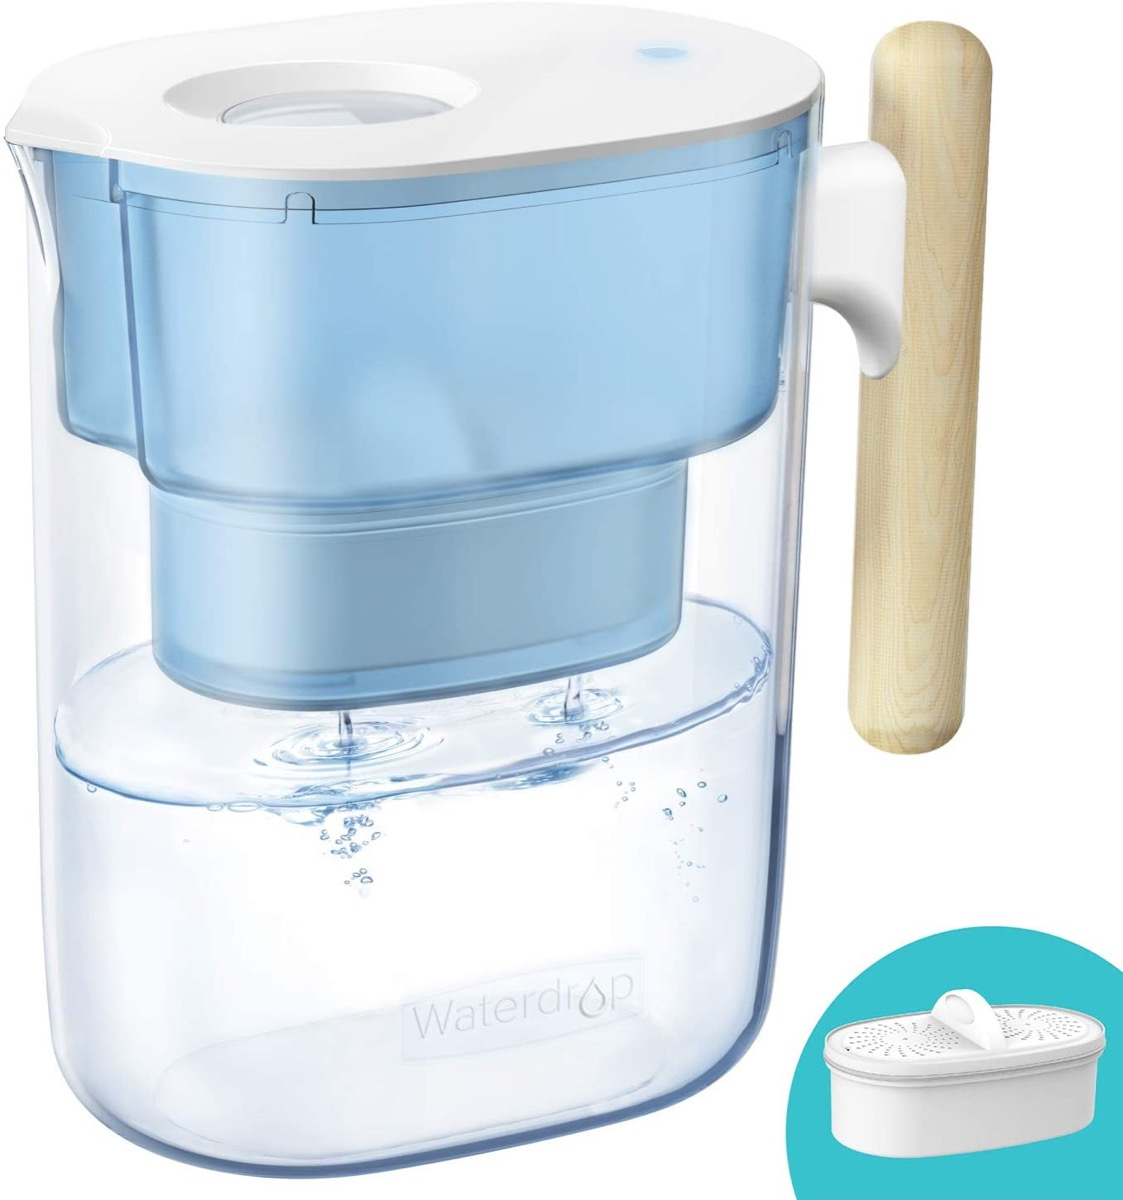 water filtration pitcher with wood handle